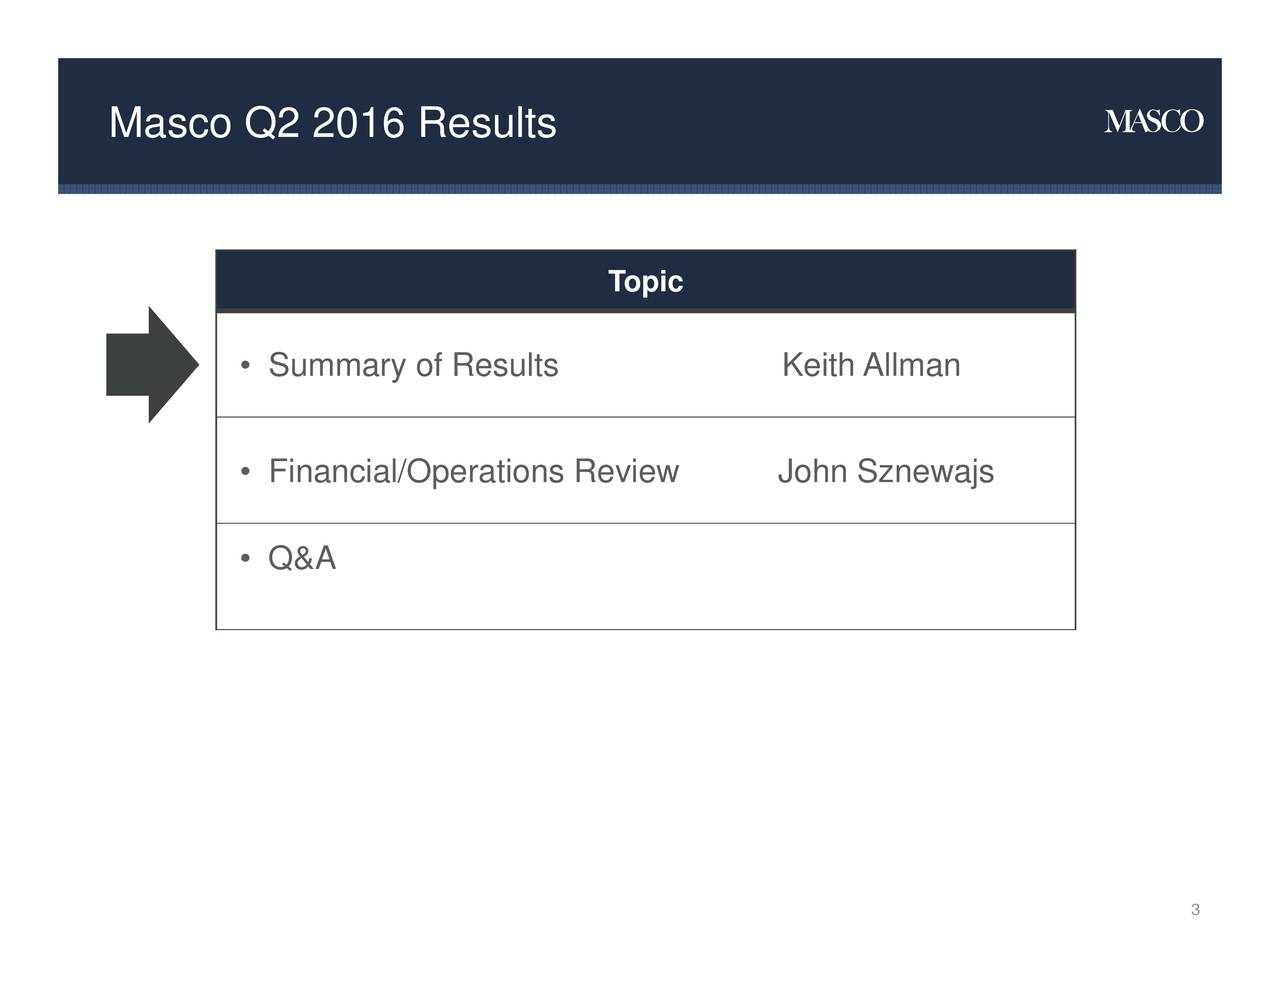 Topic Summary ofAesultsperations RevKeith Allmanznewajs Masco Q2 2016 Results